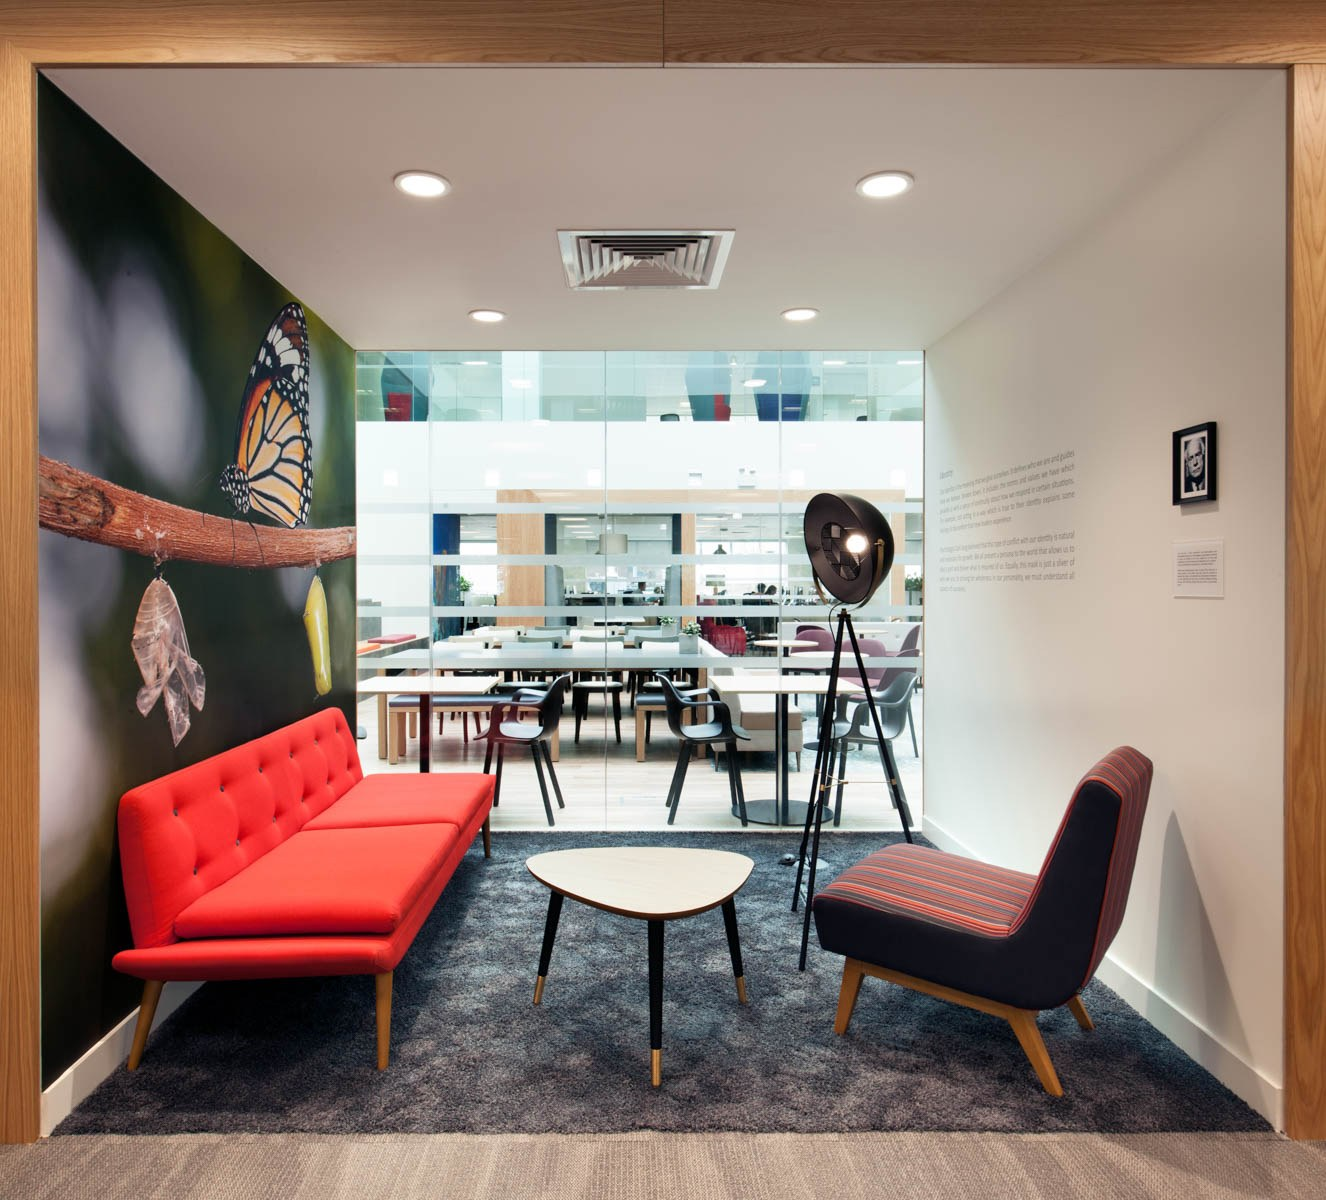 Lane4 meeting room ideas with natural light